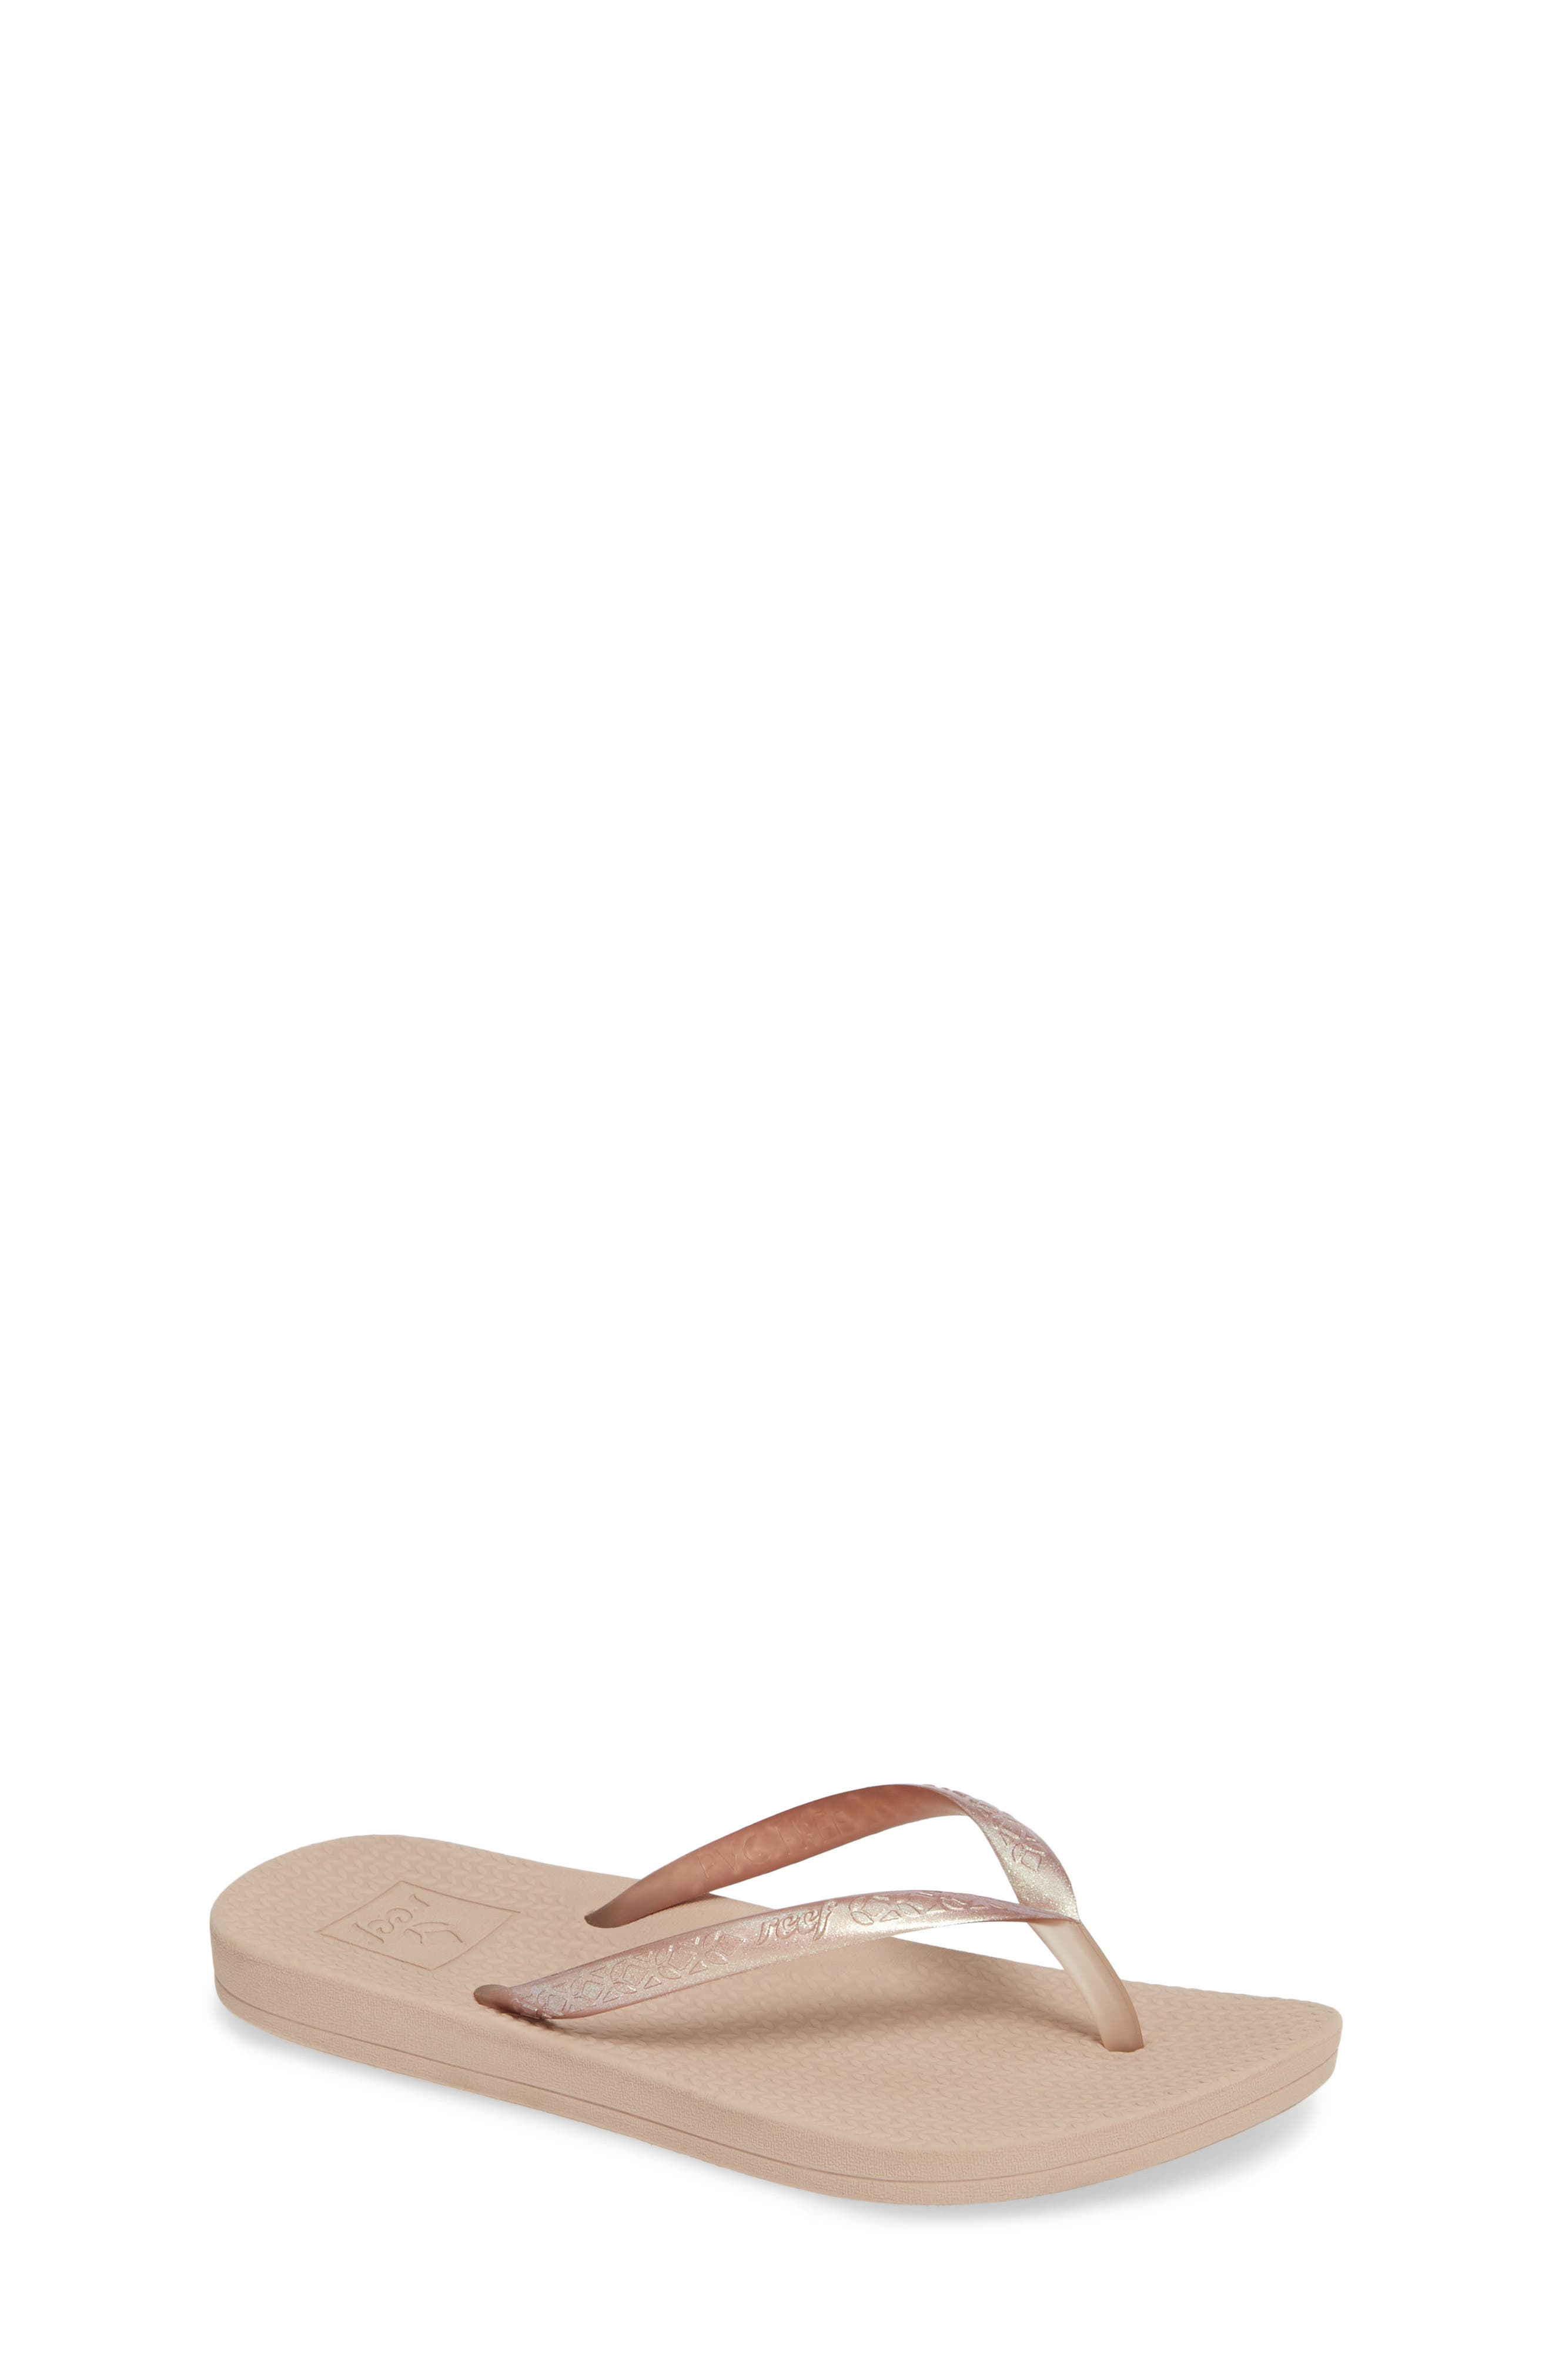 REEF Escape Lux Metals Flip Flop, Main, color, ROSE GOLD